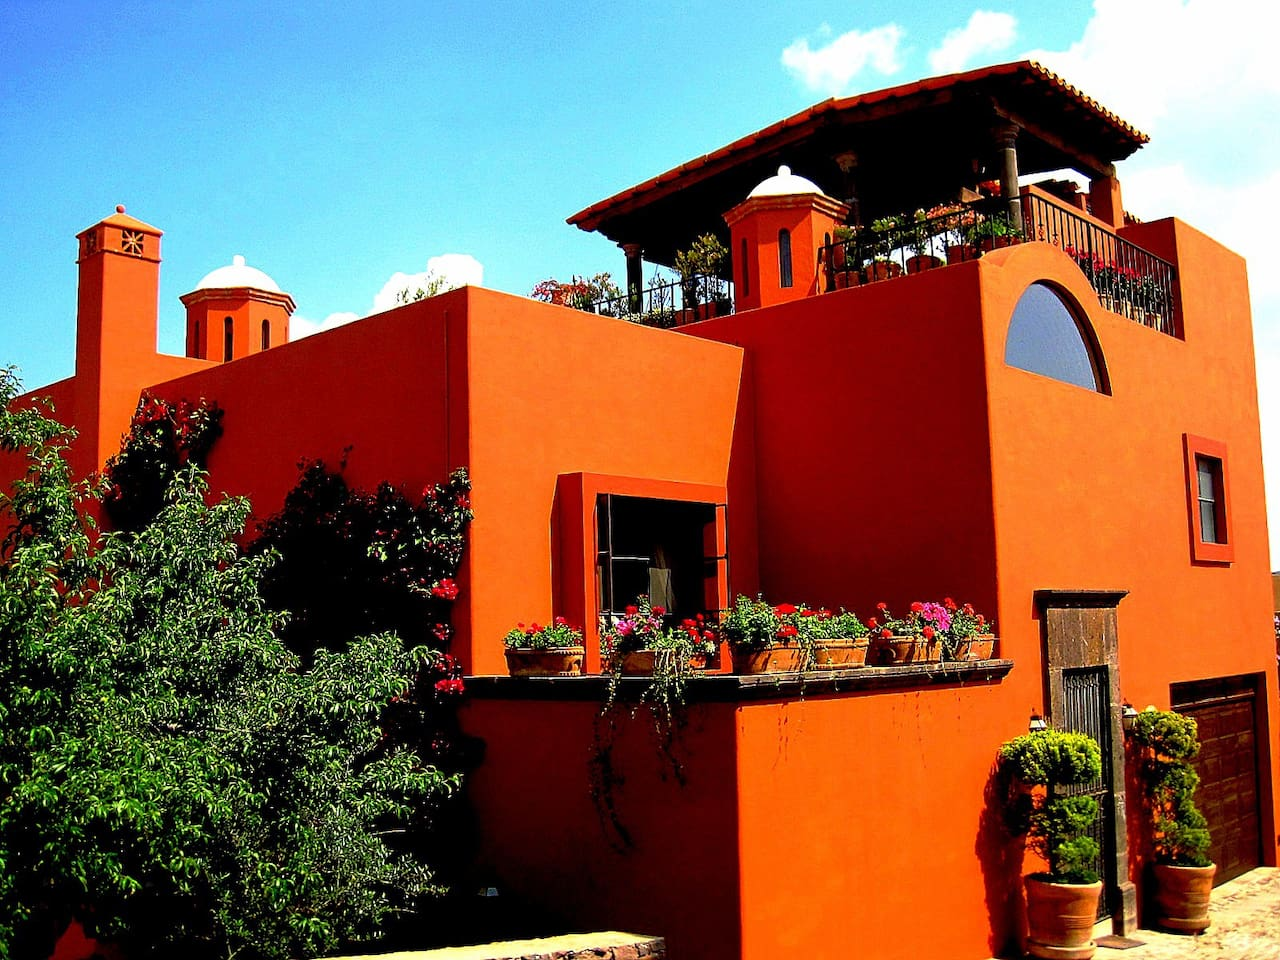 On Top of Los Balcones, with 360 degree views of San Miguel, with 3-gardens, a Rooftop Terrace, and covered Balcony!